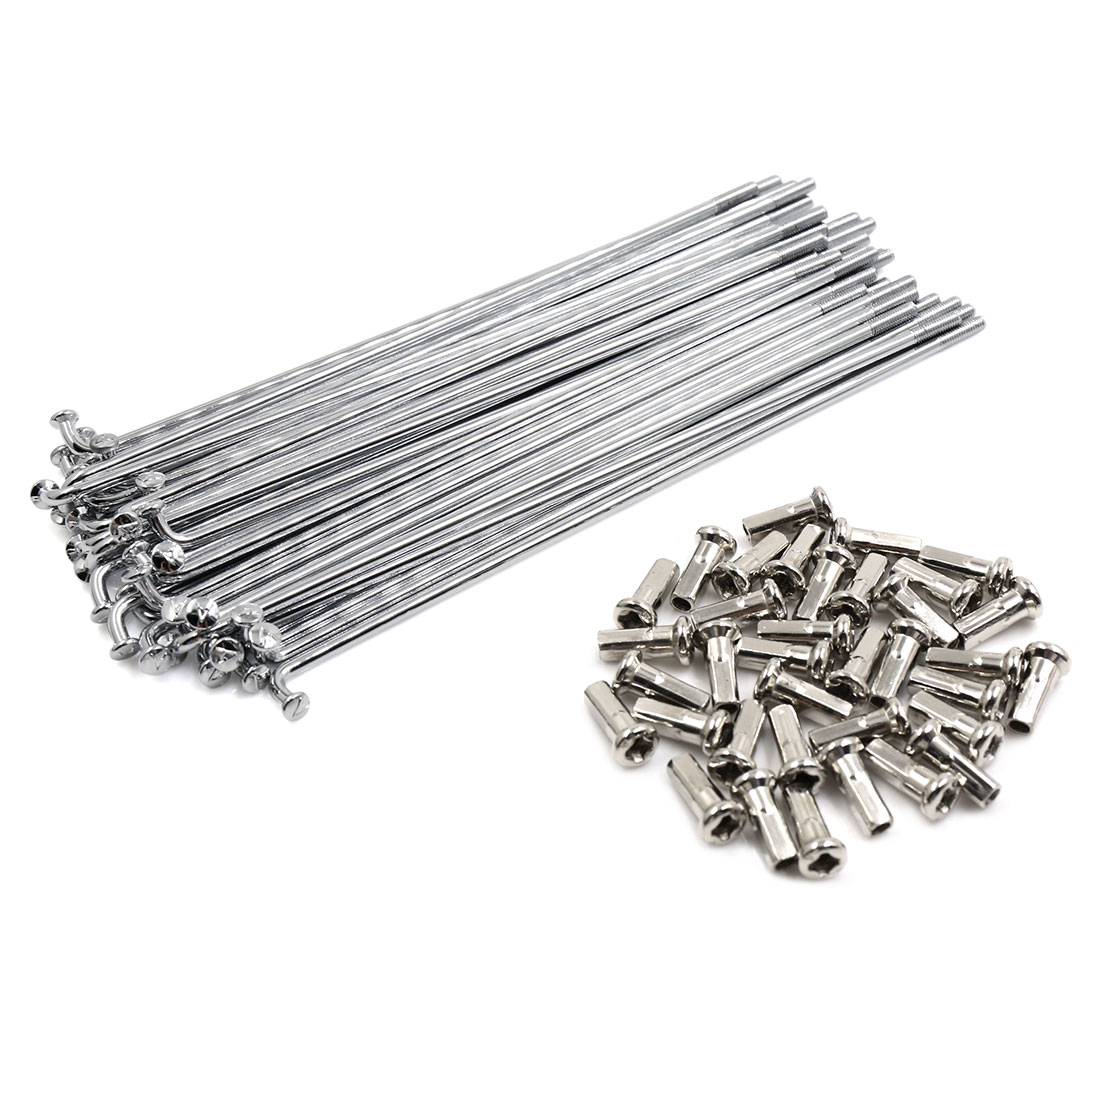 36 Sets Wheel Plated Spoke 175mm Length w/ Nipples Silver Tone for Motorcycle